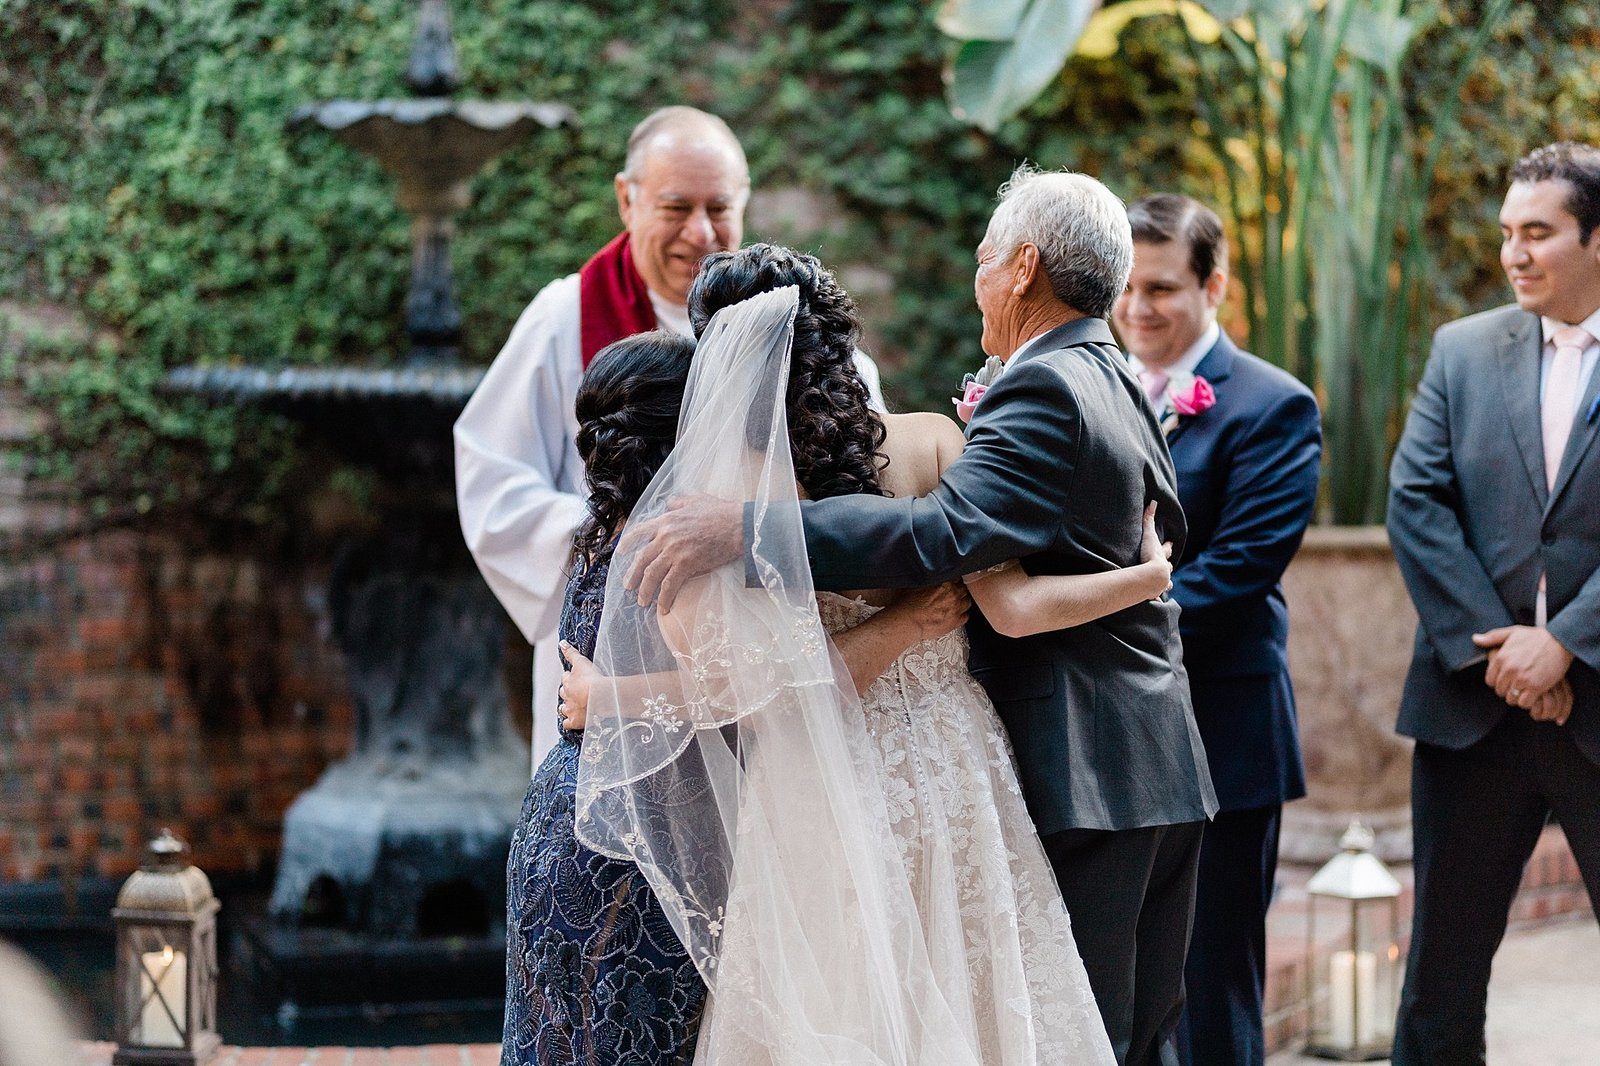 brennans of houston wedding leslie margarita photography_0059